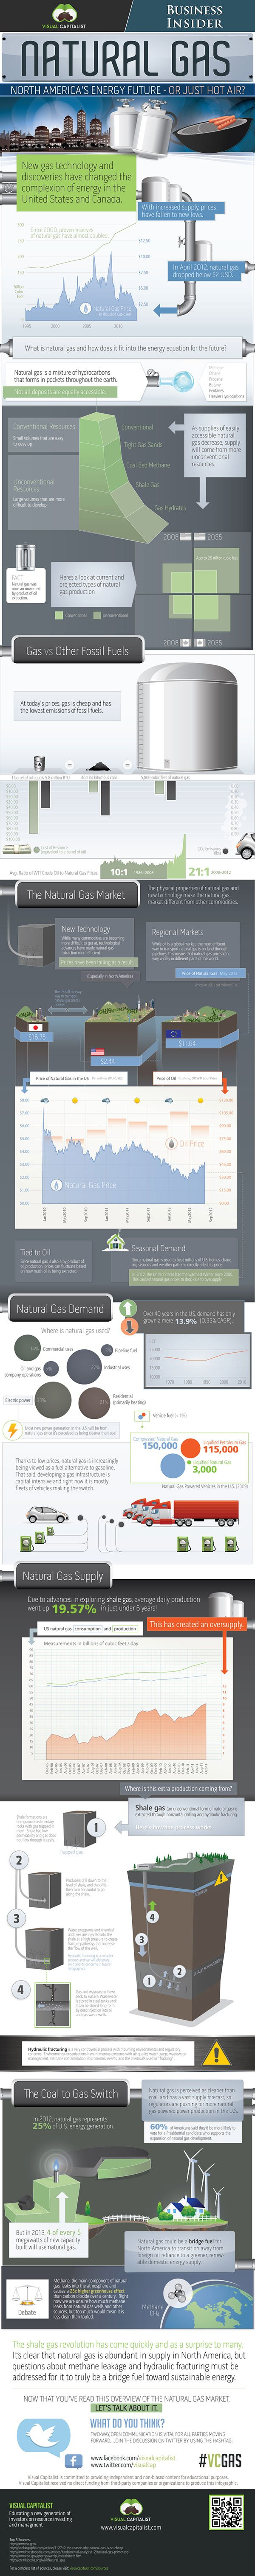 Natural Gas Infographic by Visual Capitalist